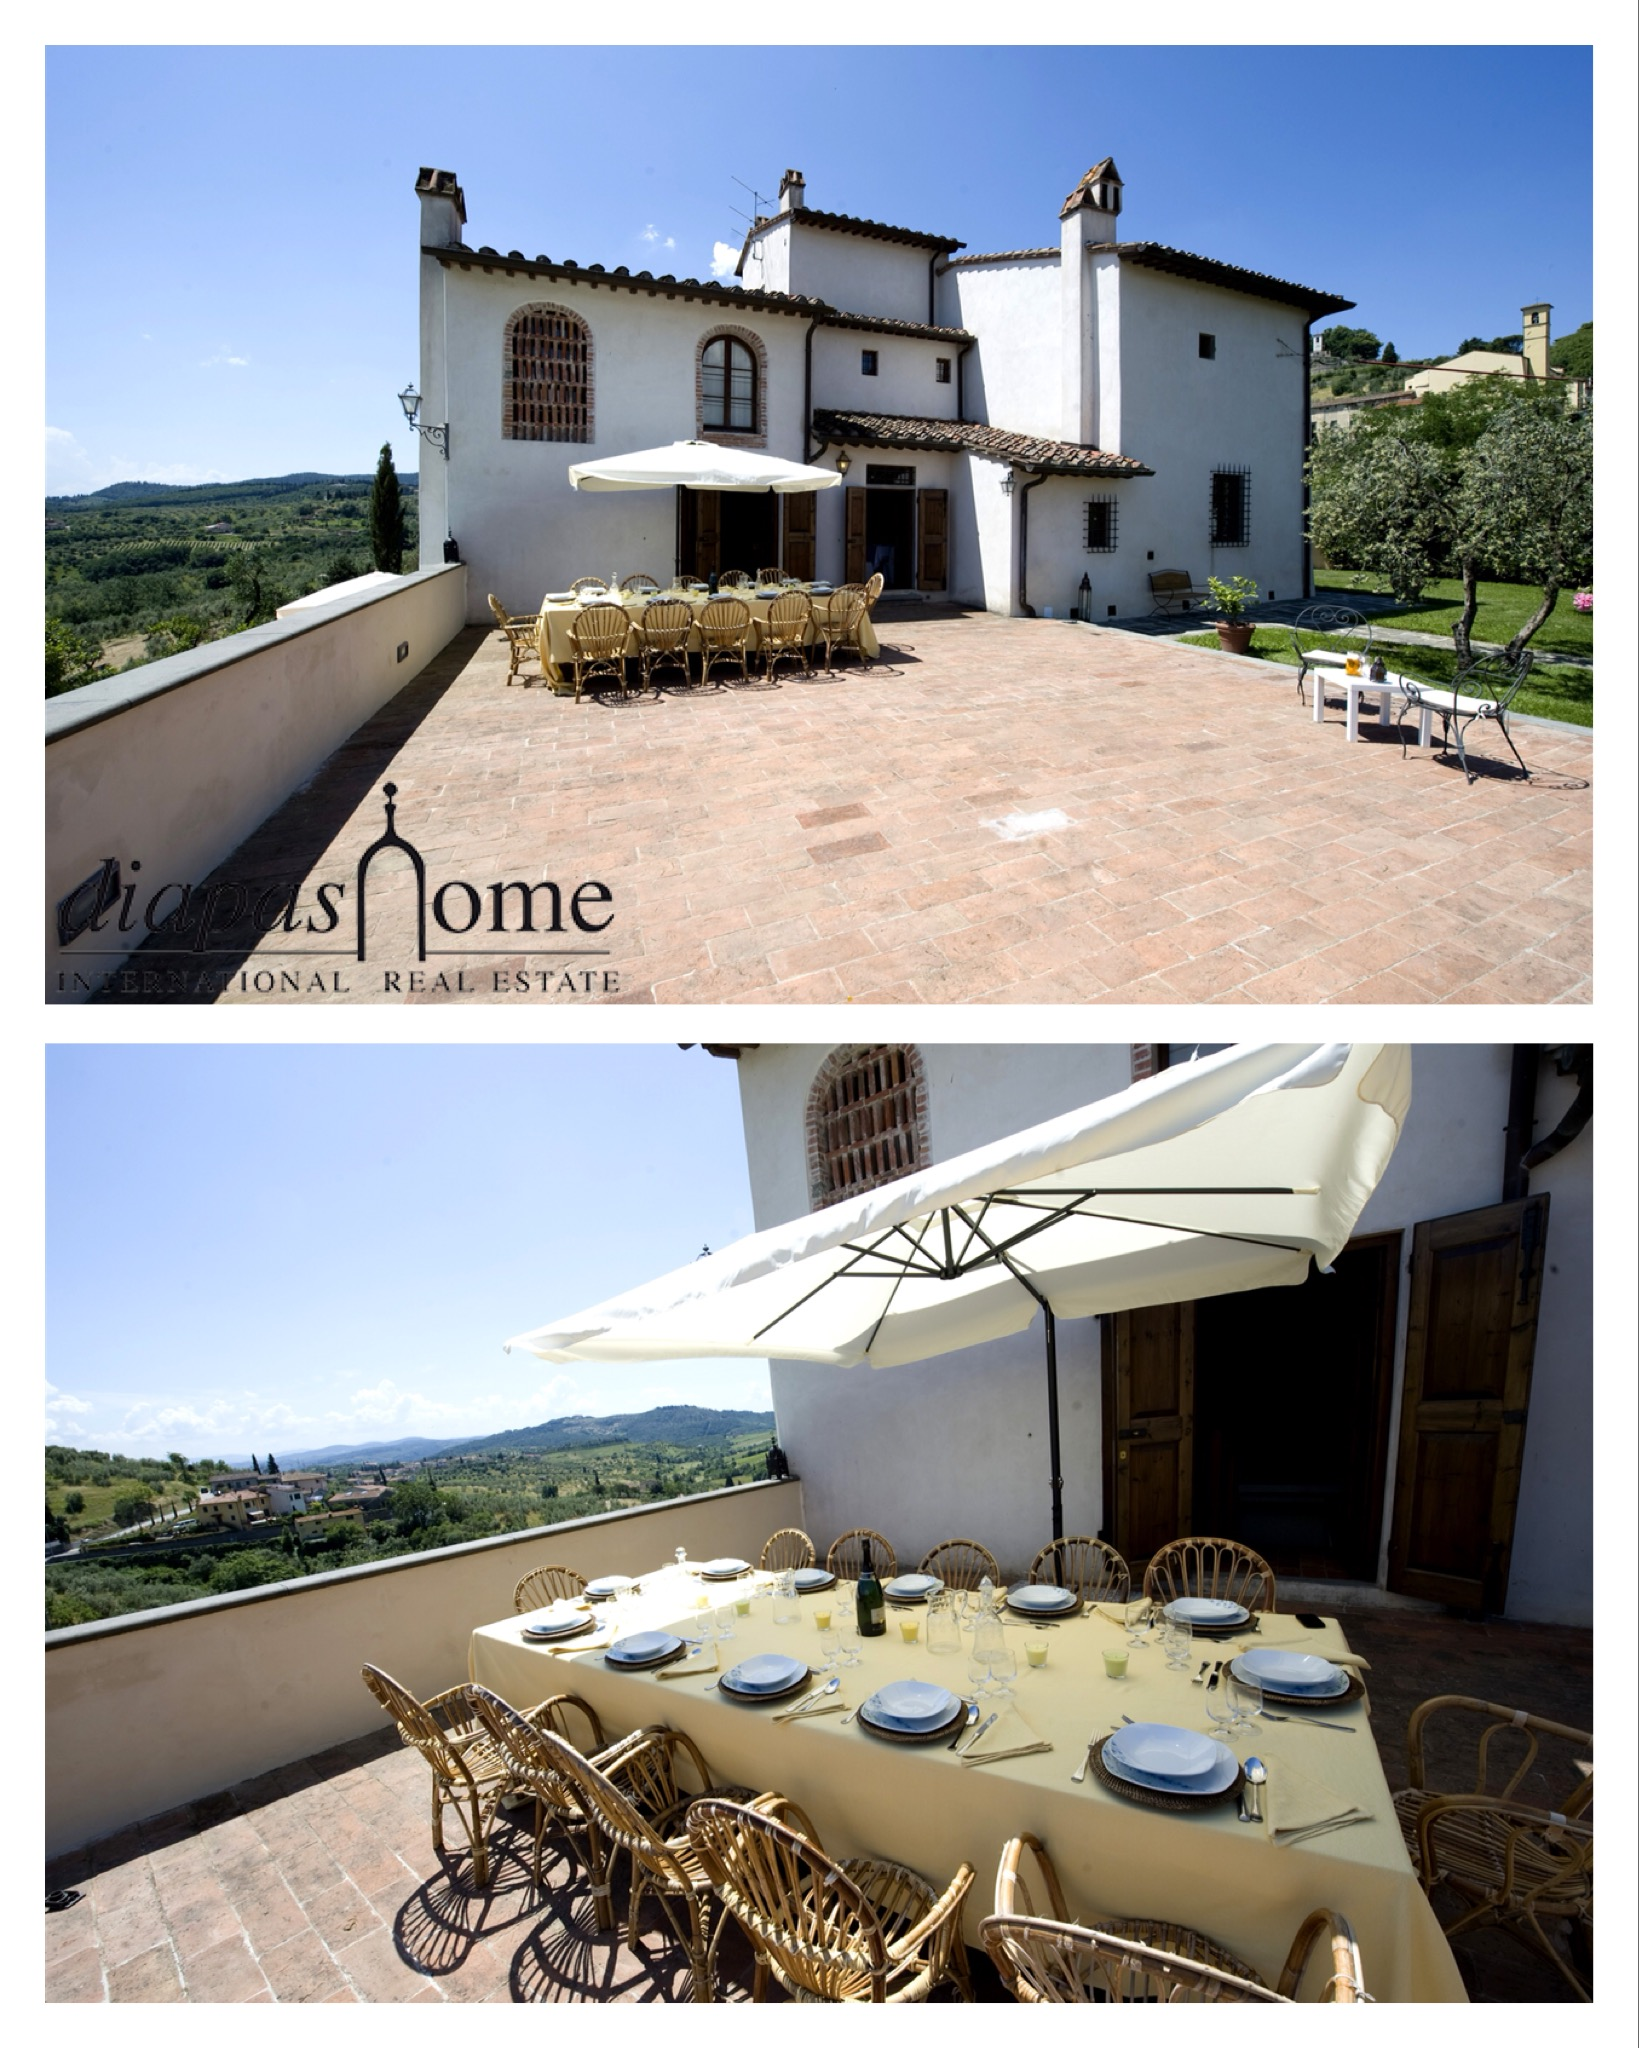 villa, carmignano,diapashome,real,estate_13